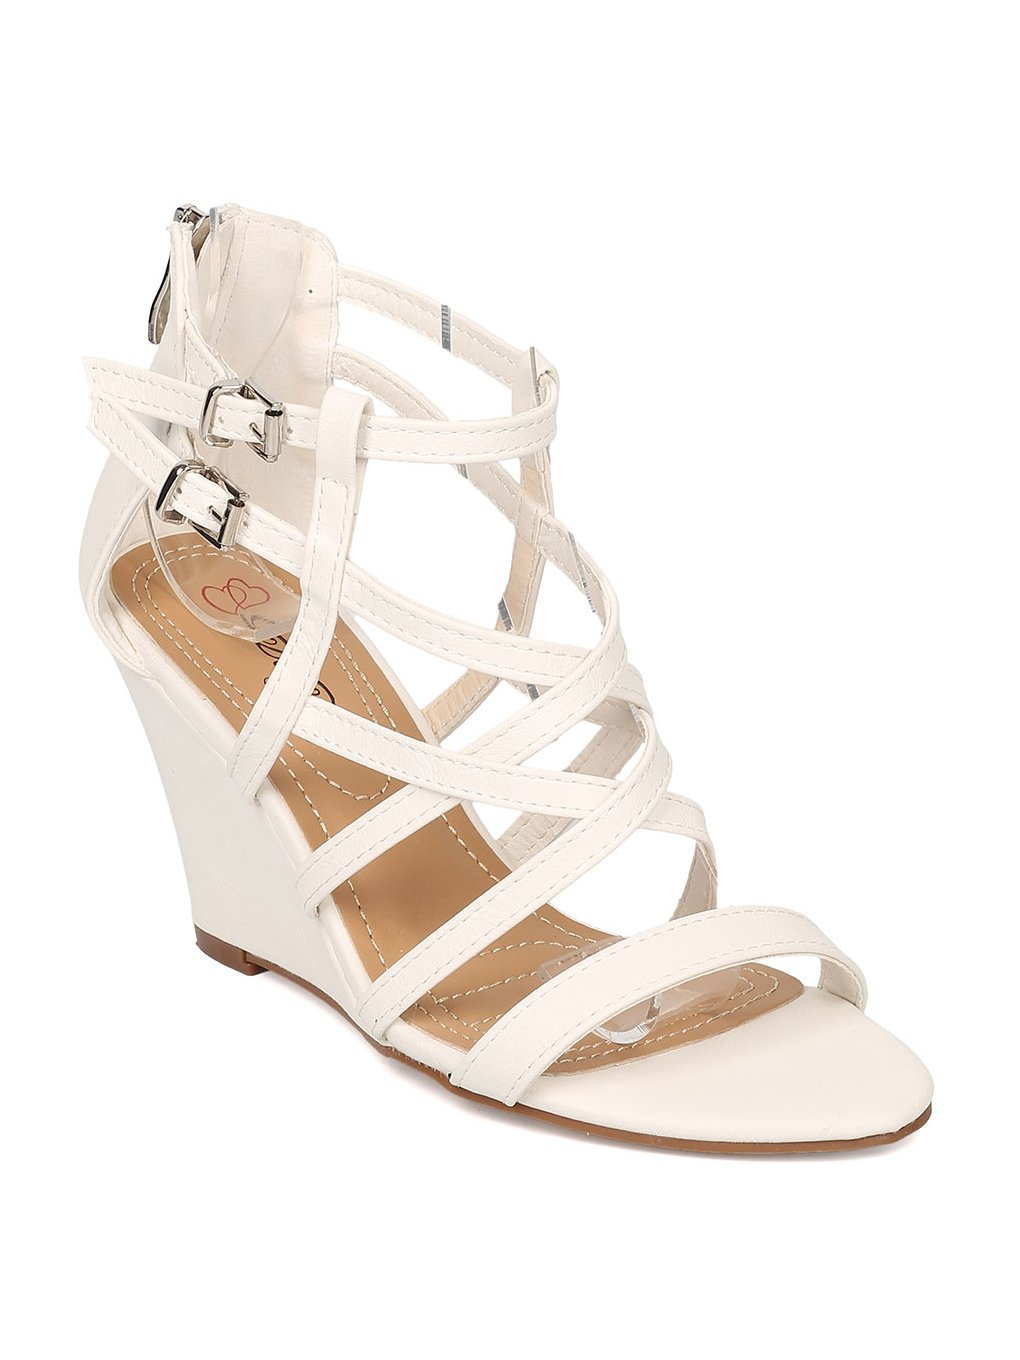 Alrisco Women Leatherette Open Toe Strappy Wedge Sandal HB27 B071FVXV92 10 M US|White Leatherette